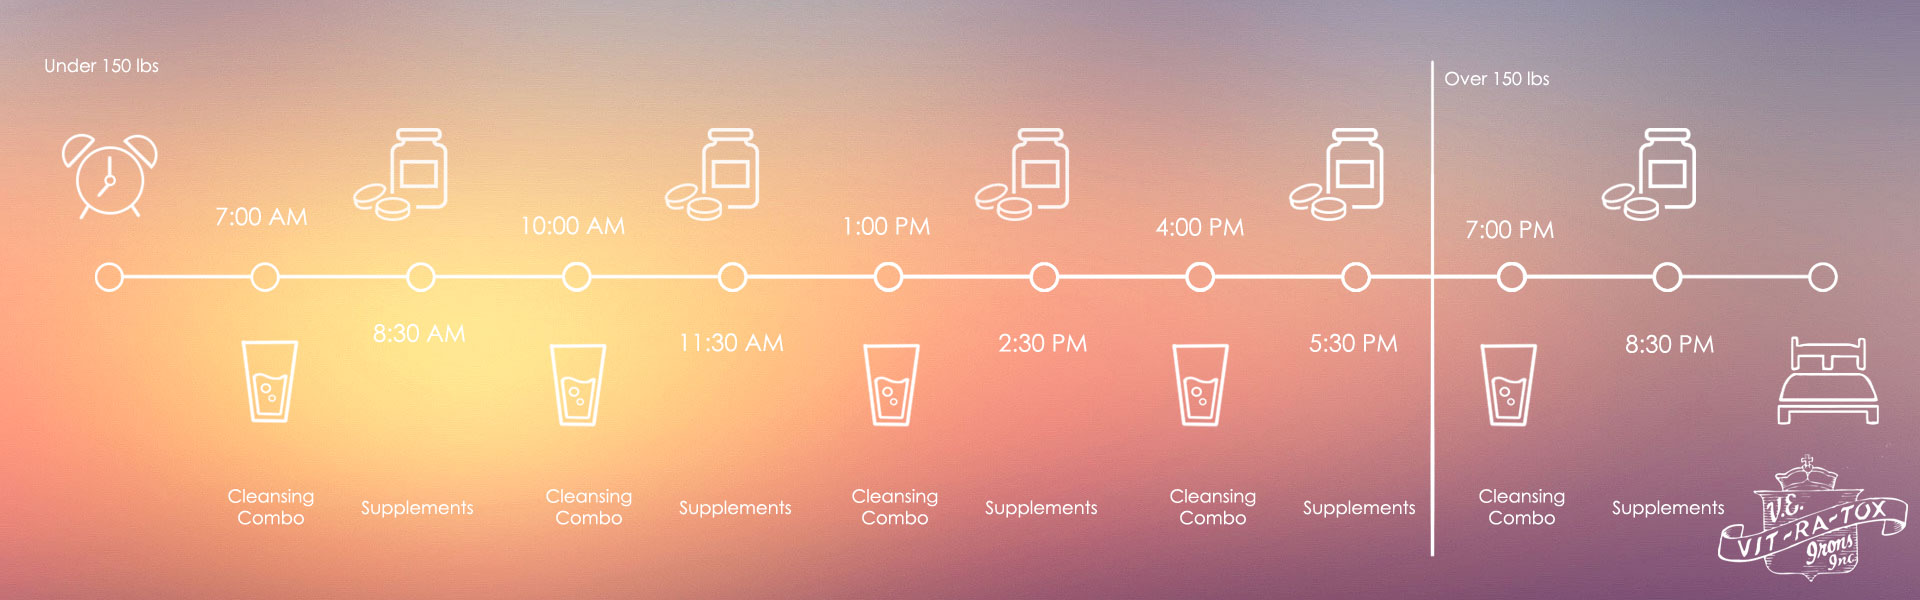 A sample Cleansing Schedule that visualizes when VITRATOX products should be taken while on the 7-Day Cleanse.